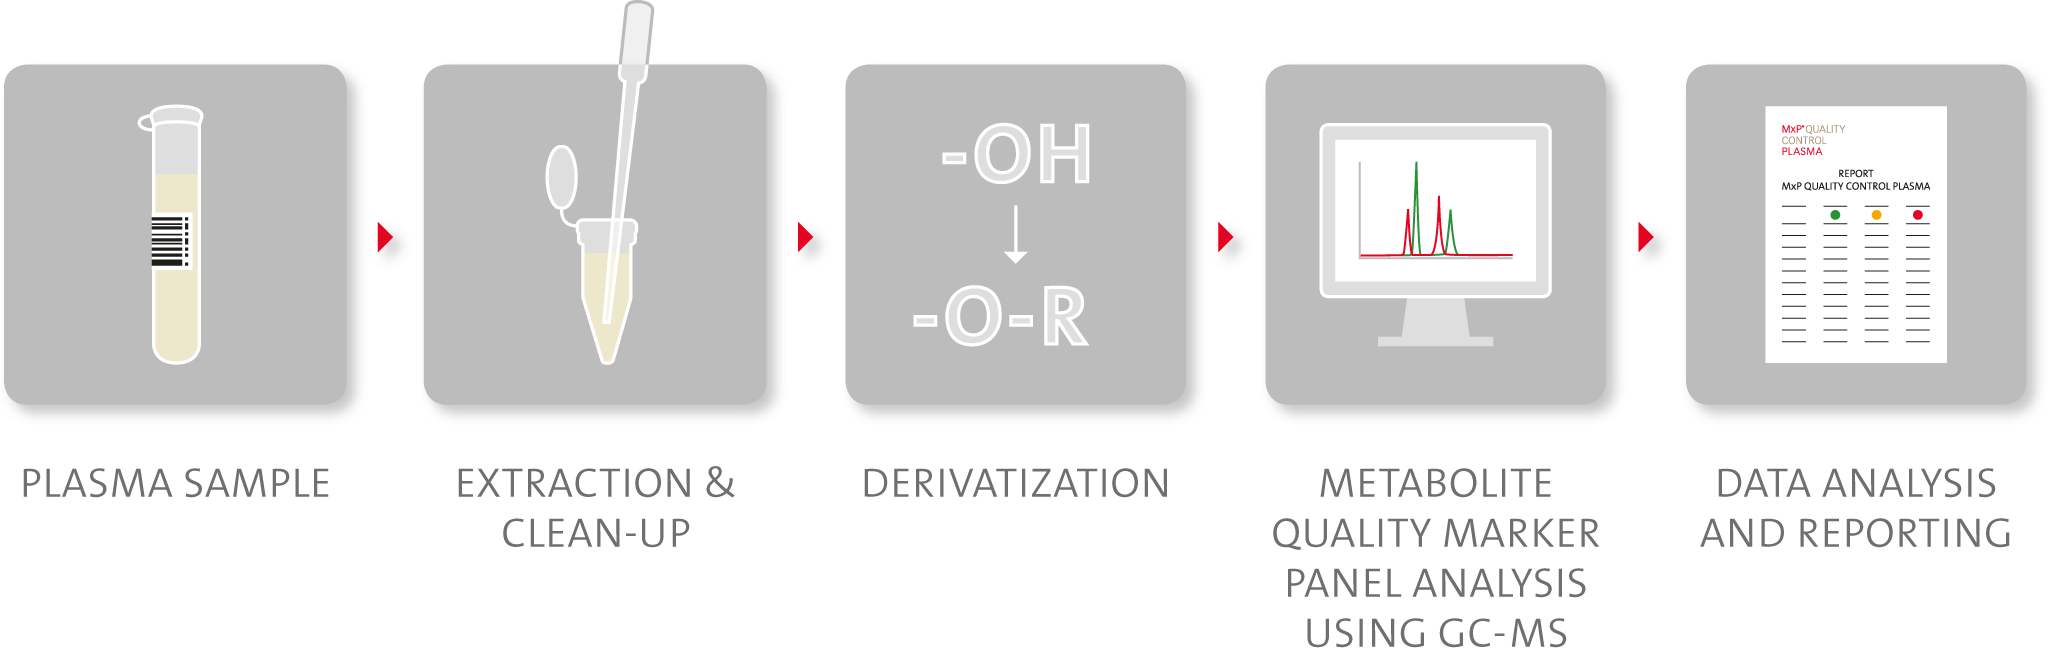 Schematic representation of MxP® Quality